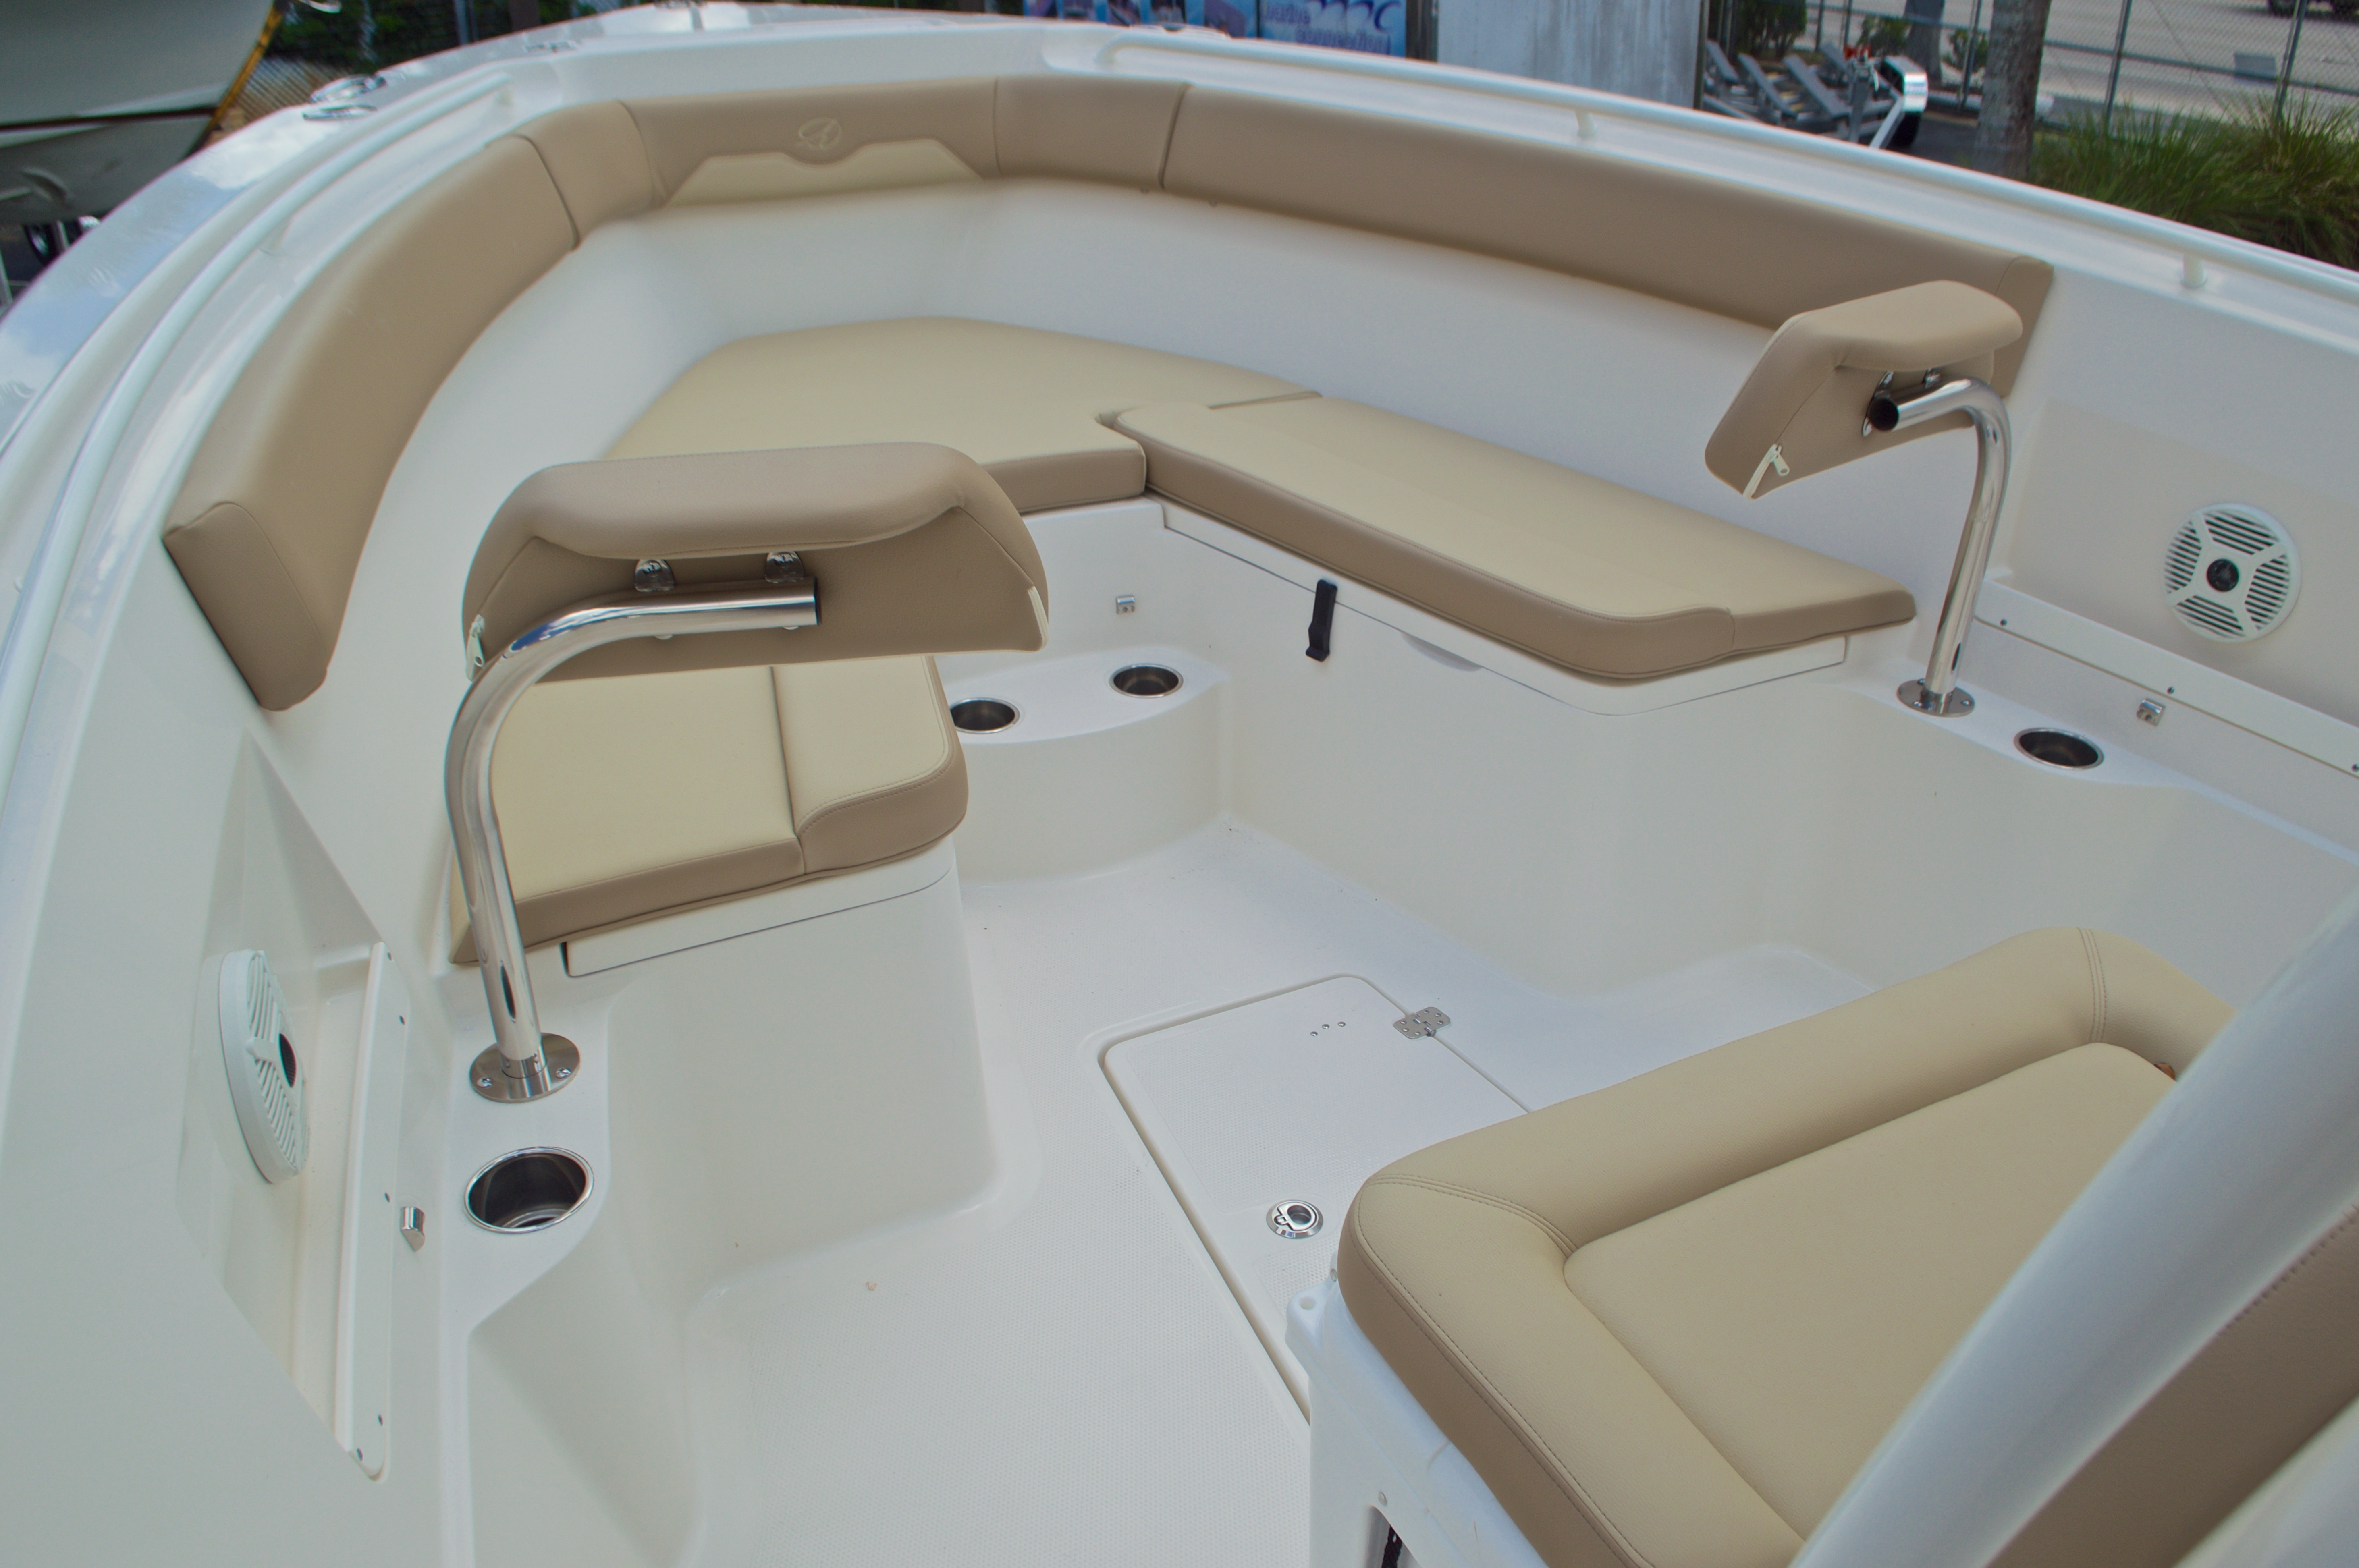 Thumbnail 44 for New 2017 Sailfish 290 CC Center Console boat for sale in Miami, FL